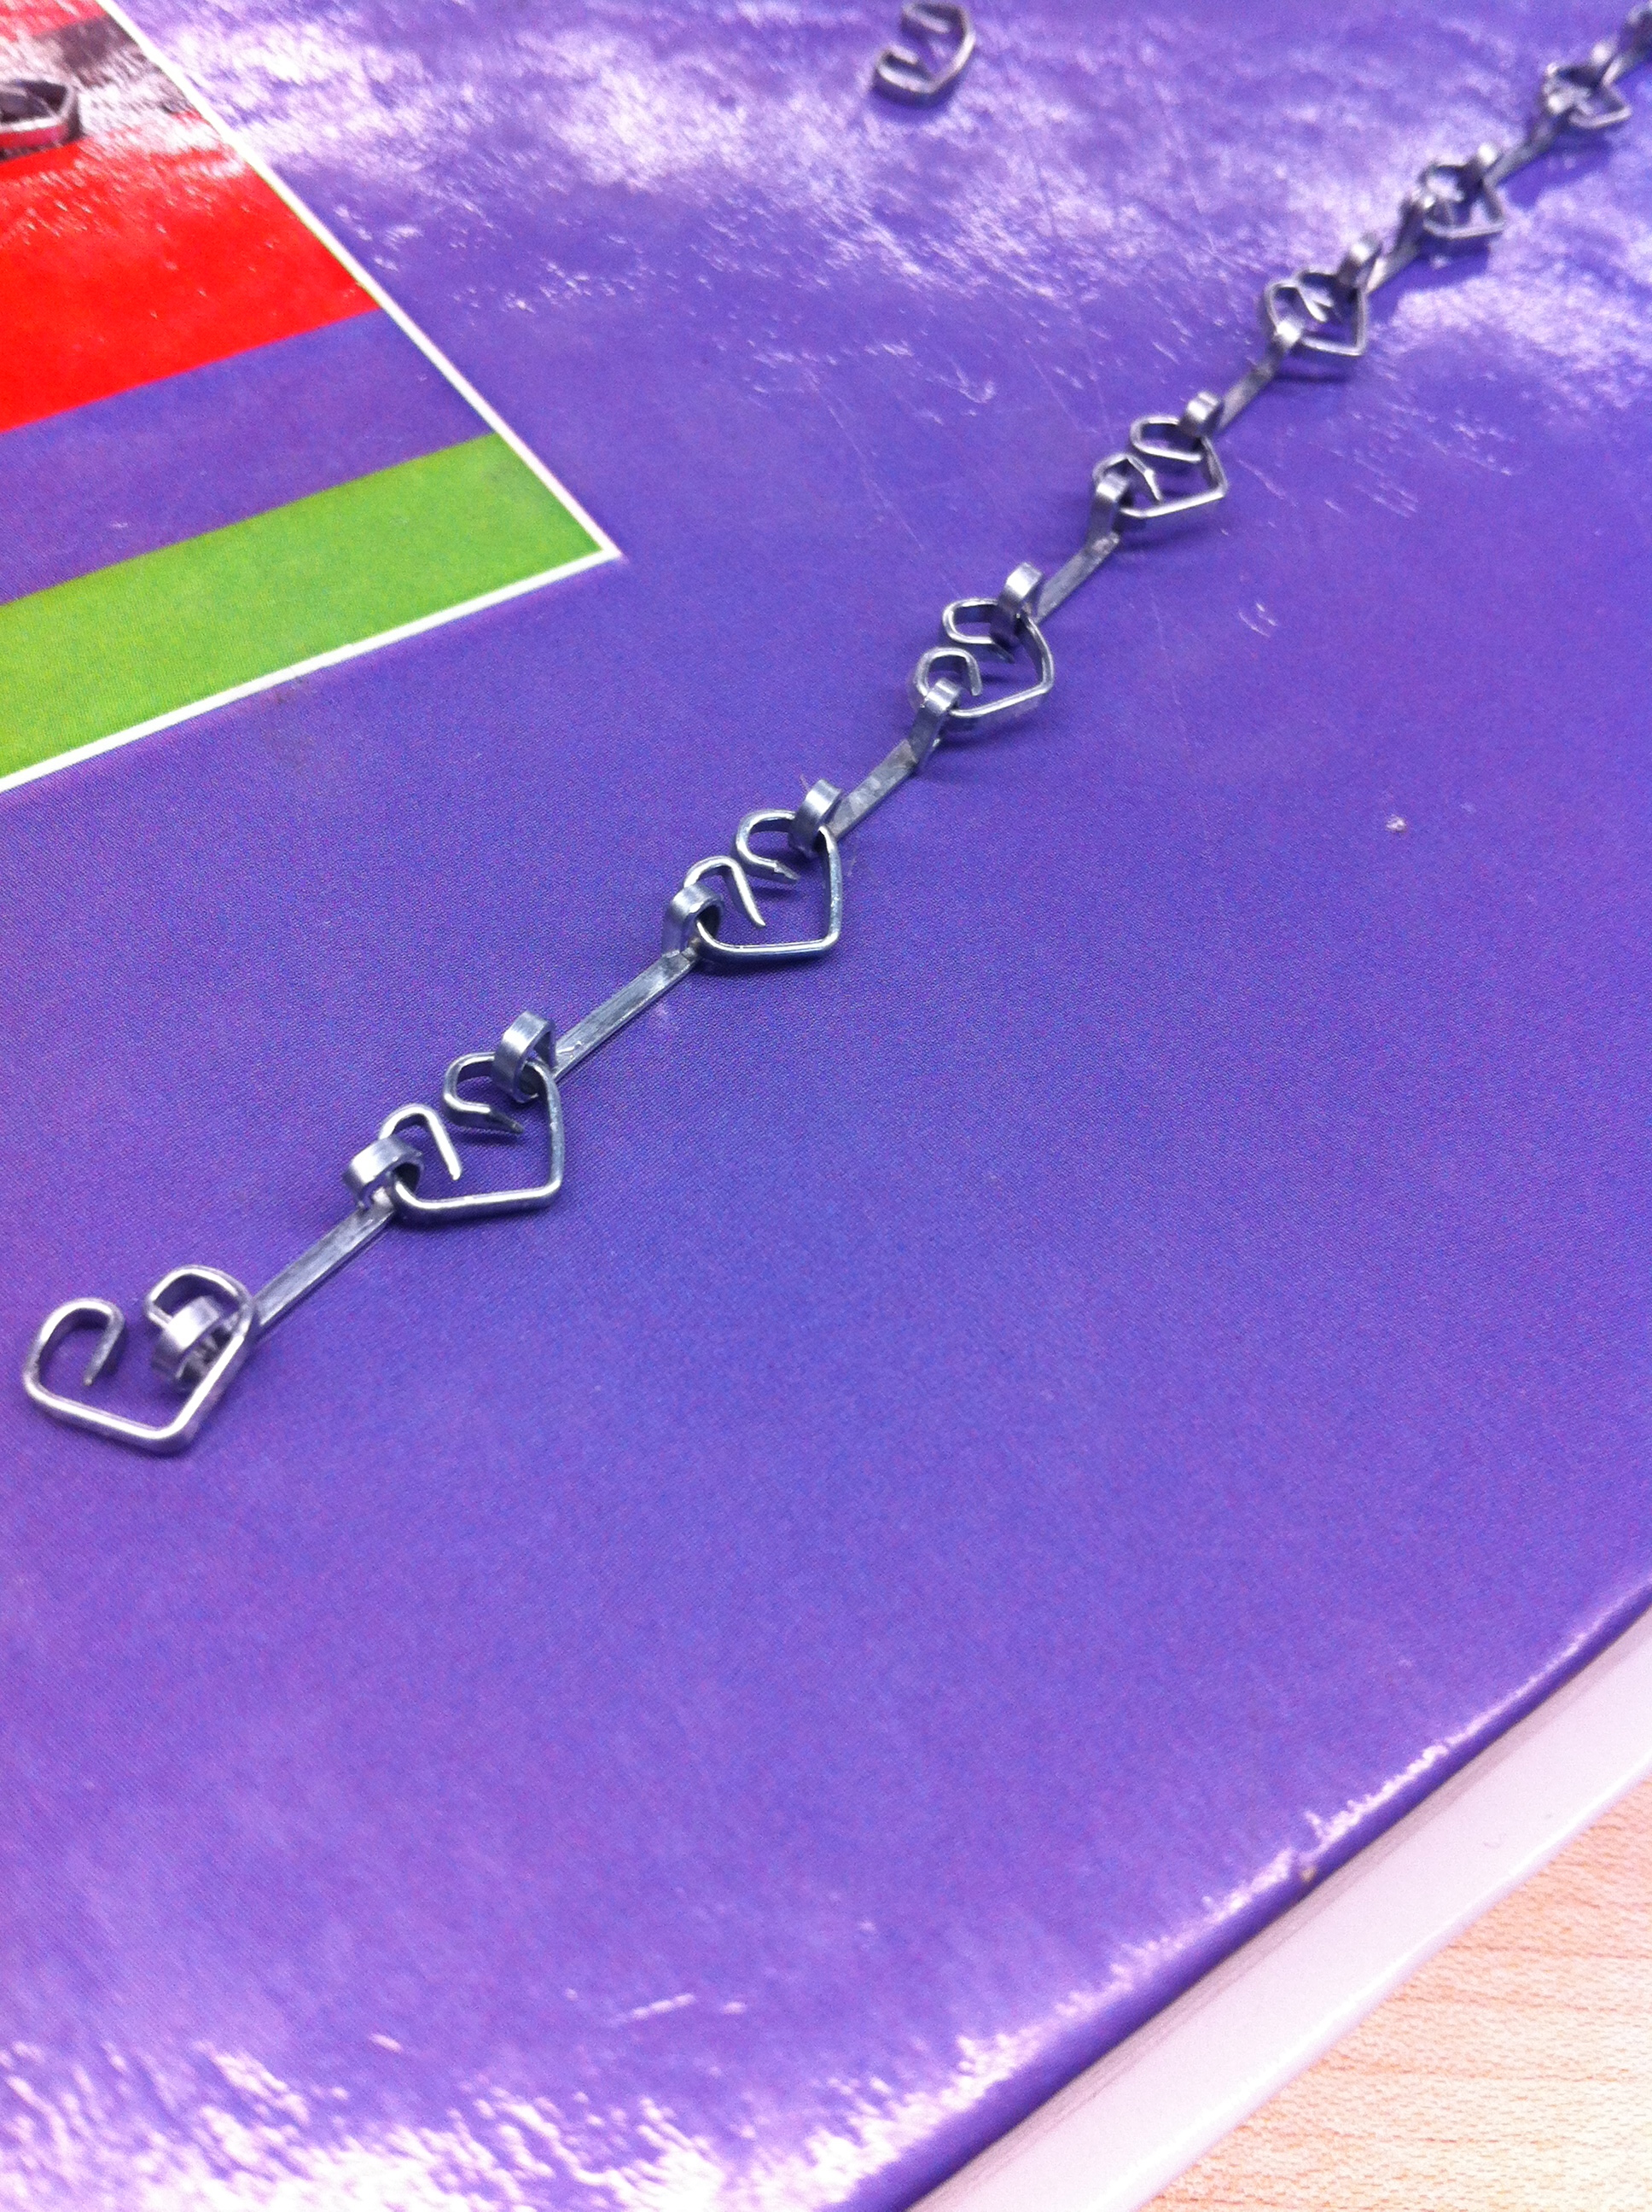 Heart Necklace (made out of staples)